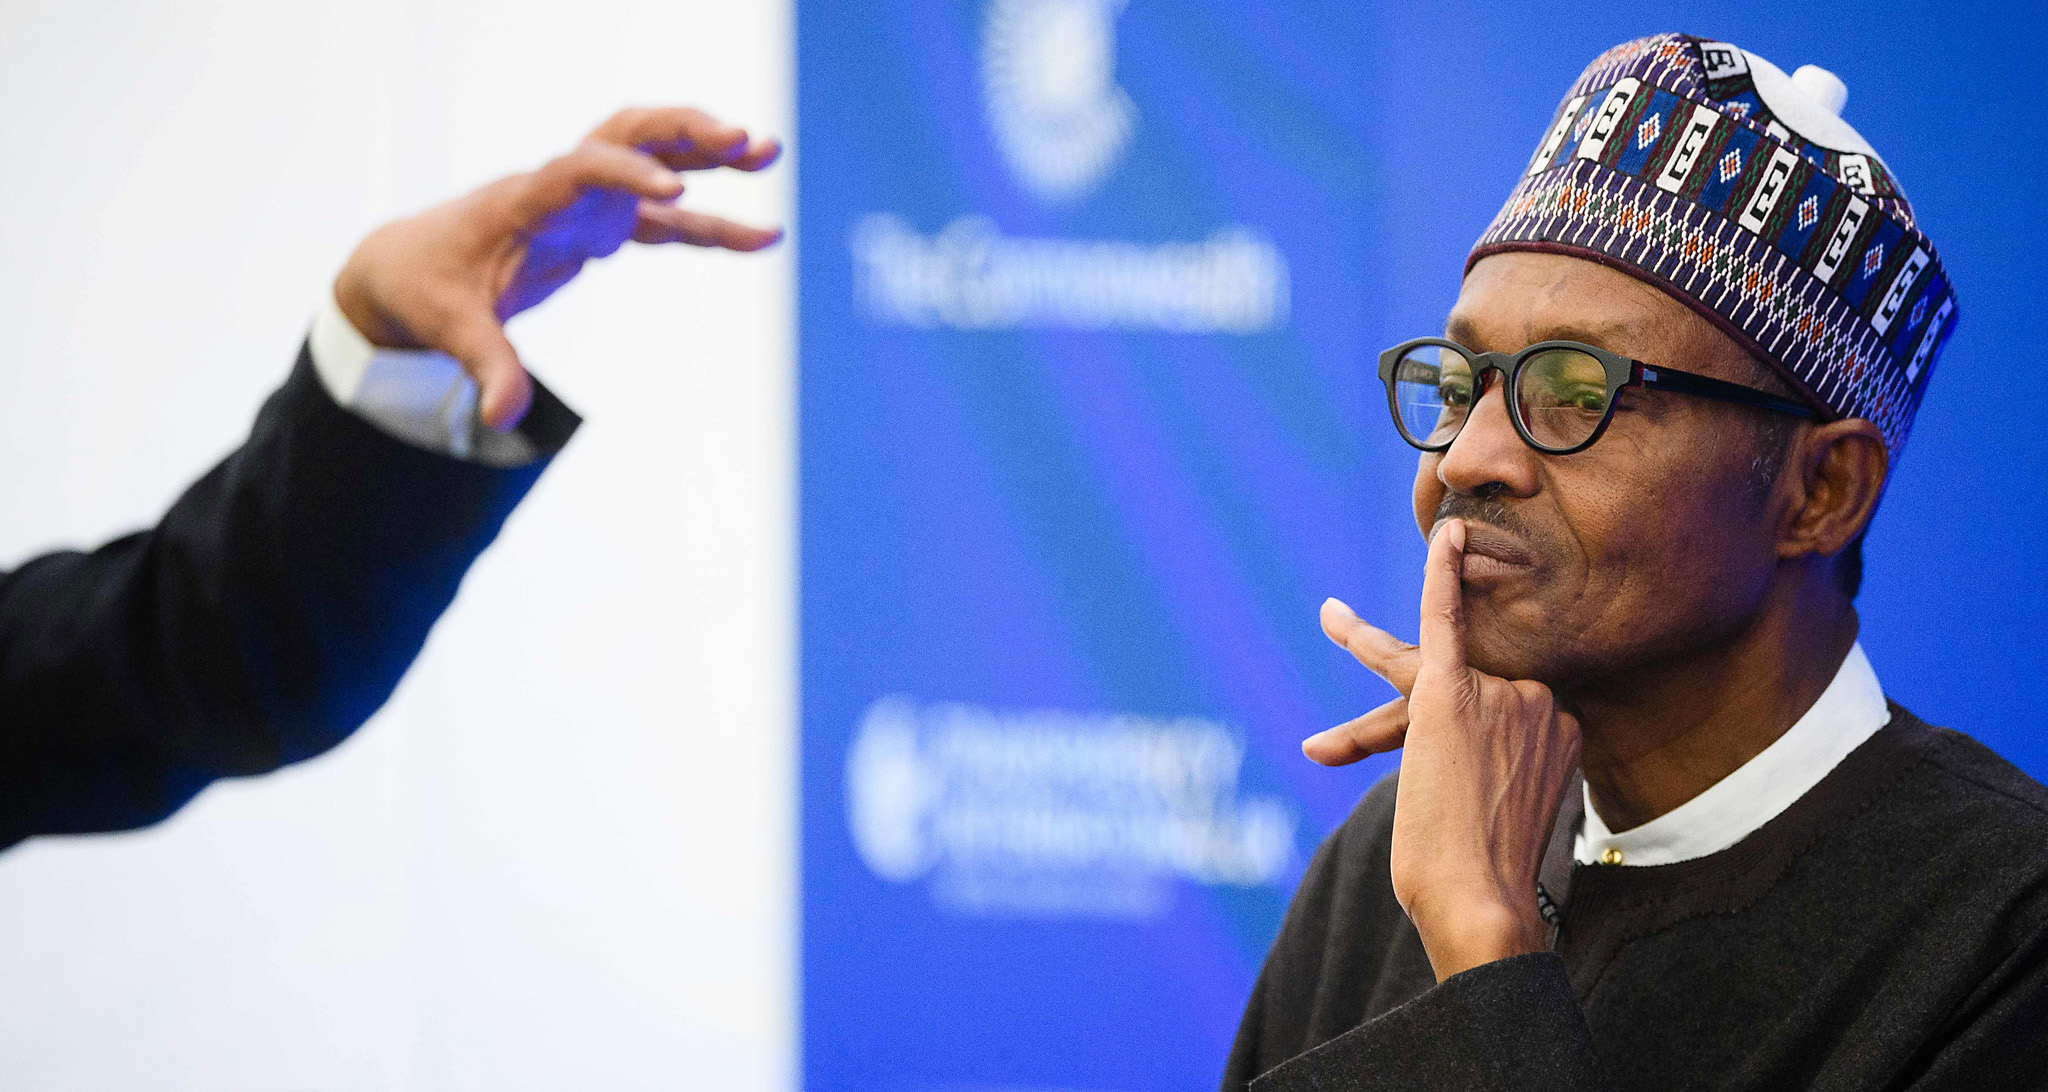 Nigerian President Muhammadu Buhari list...Nigerian President Muhammadu Buhari listens at the start of a conference to tackle corruption at the Commonwealth Secretariat in London on May 11, 2016. / AFP PHOTO / LEON NEALLEON NEAL/AFP/Getty Images